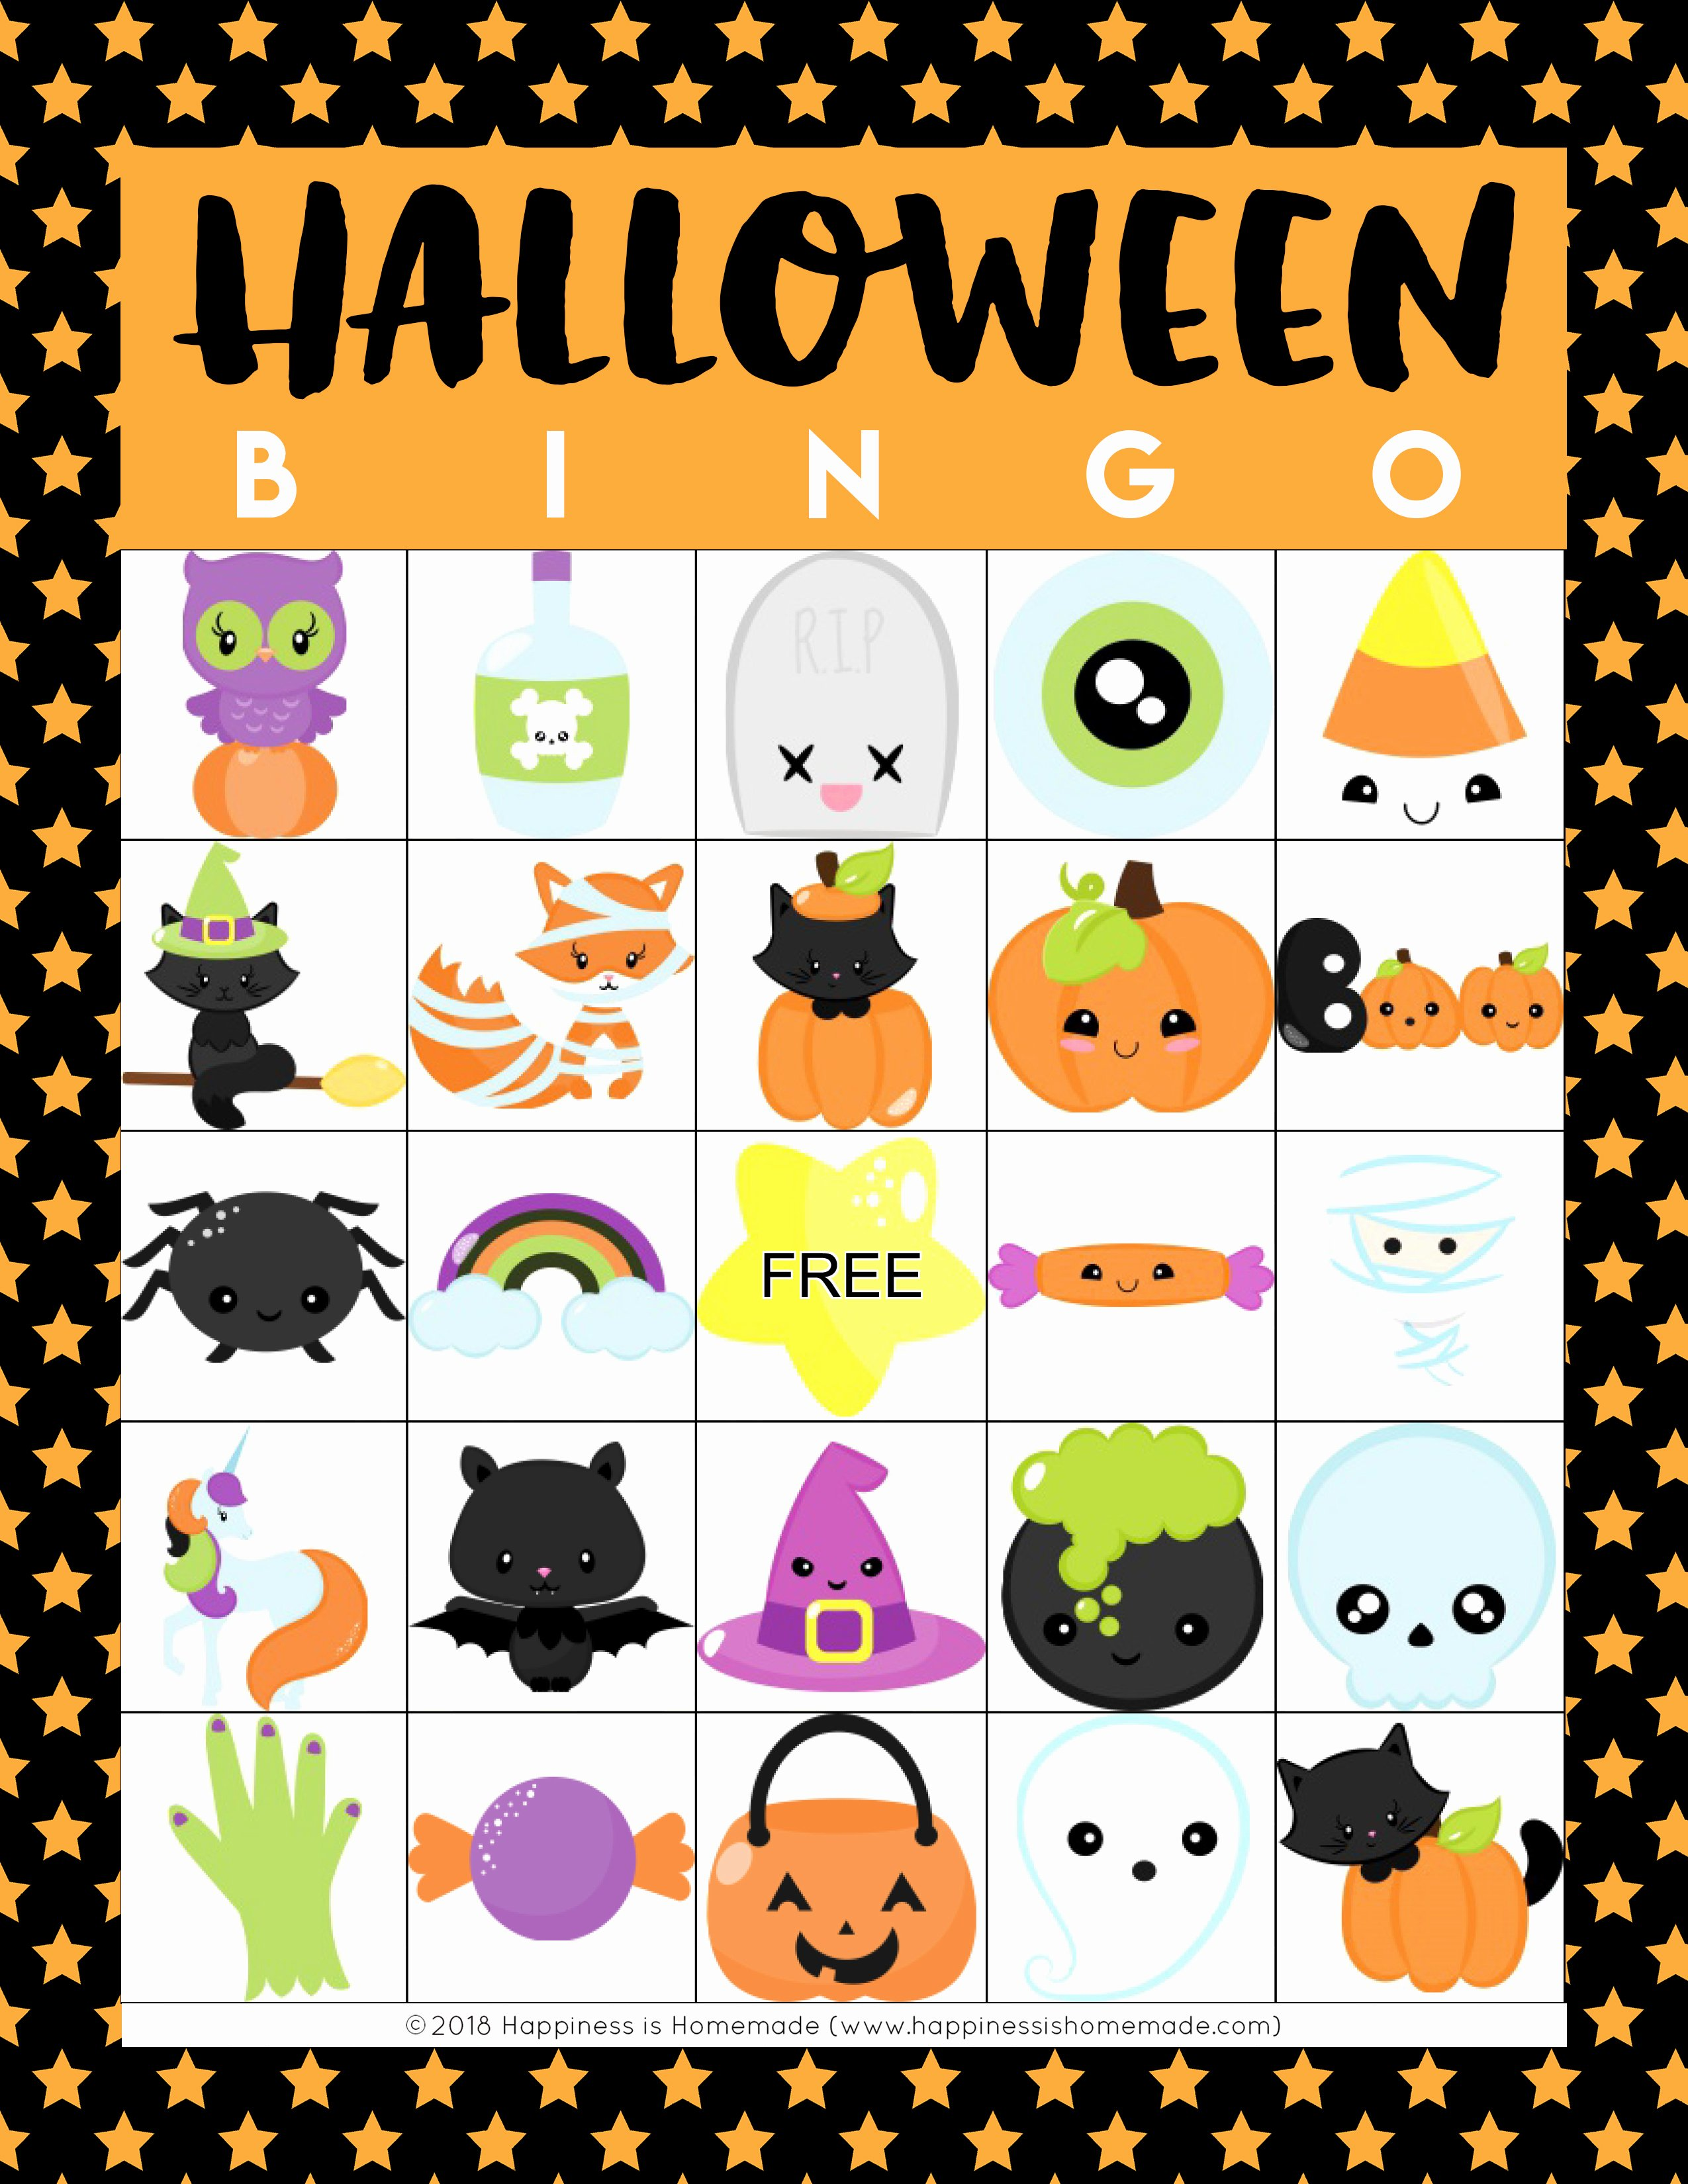 Free Printable Bingo Boards New Printable Halloween Bingo Cards Happiness is Homemade